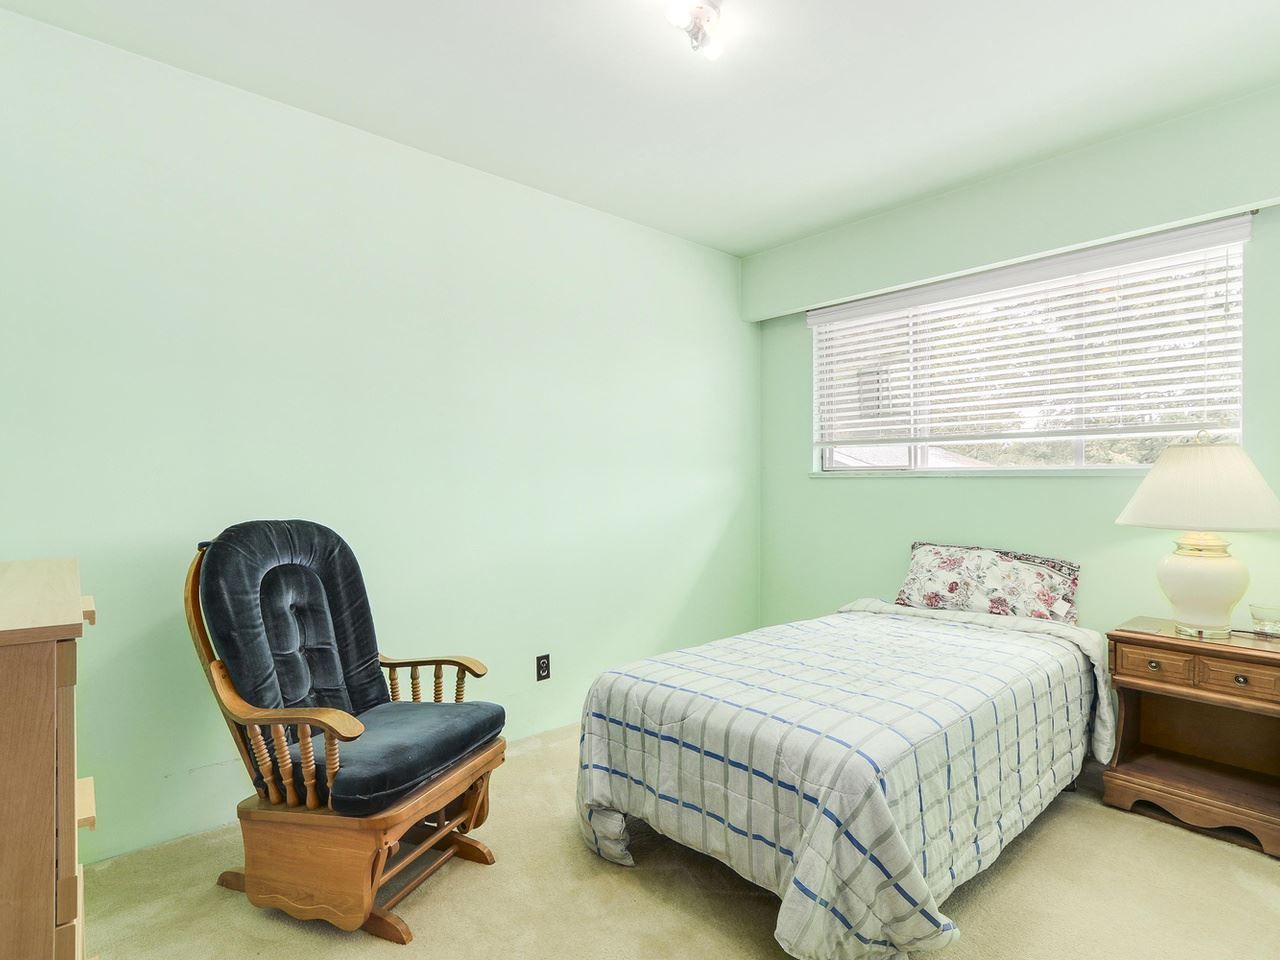 Photo 13: Photos: 731 LINTON Street in Coquitlam: Central Coquitlam House for sale : MLS®# R2157896